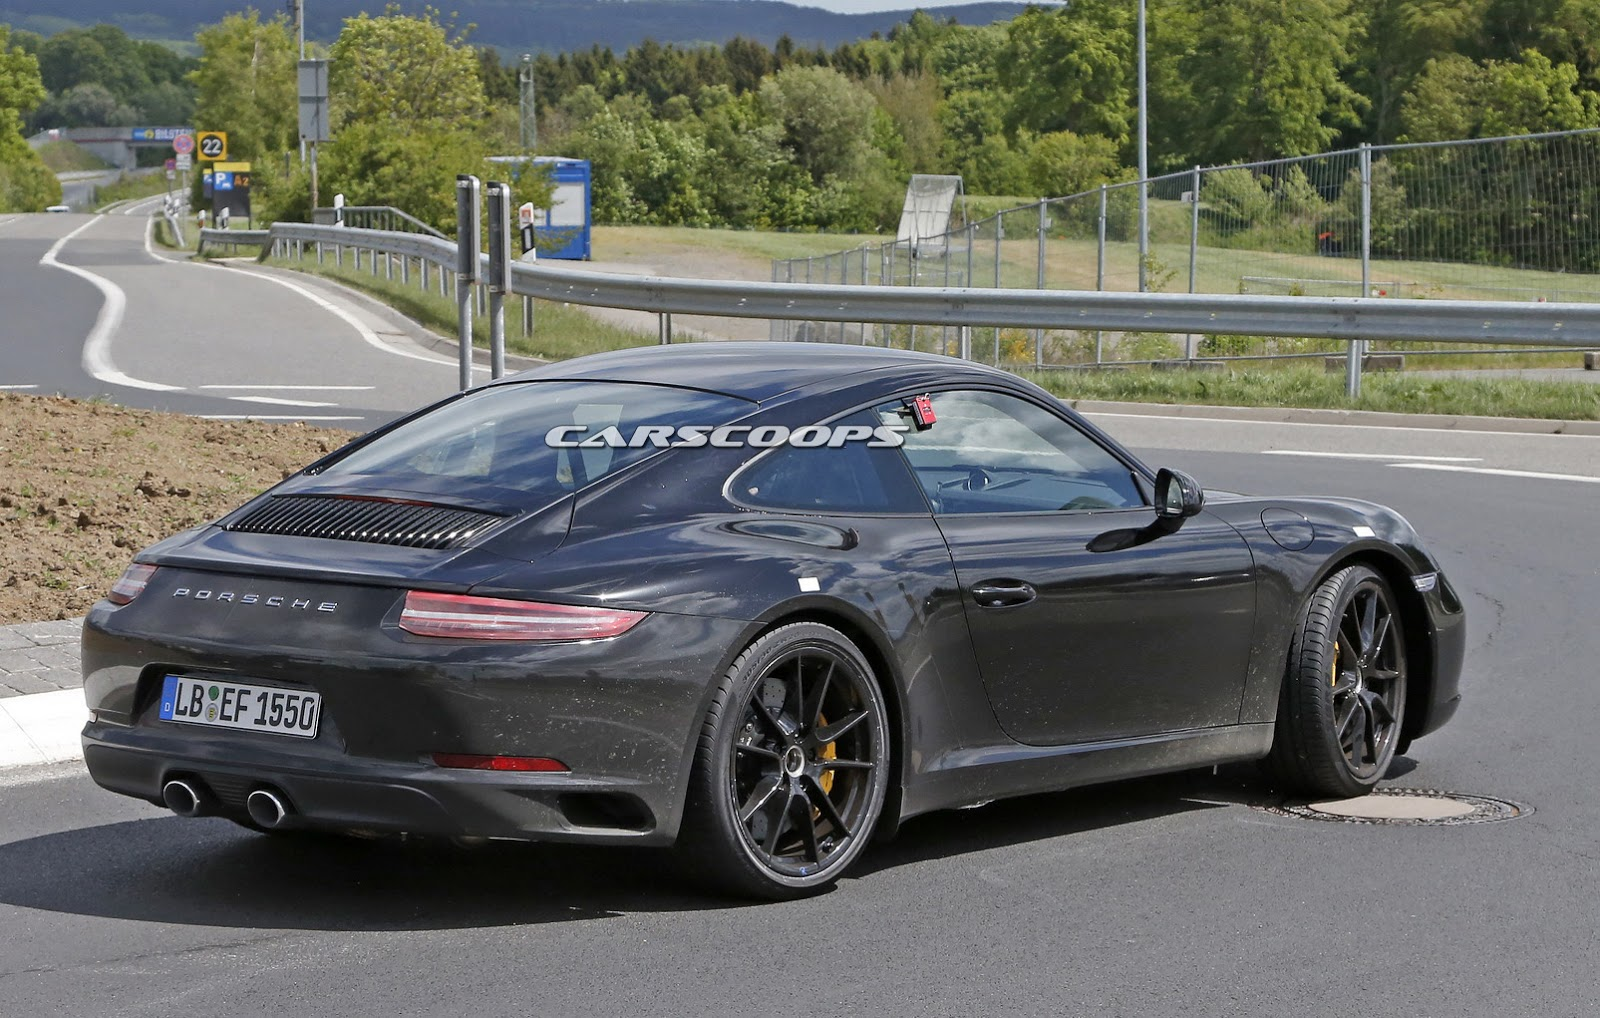 Spied: 2016 Porsche 991 Facelift Finally Shows Its Real